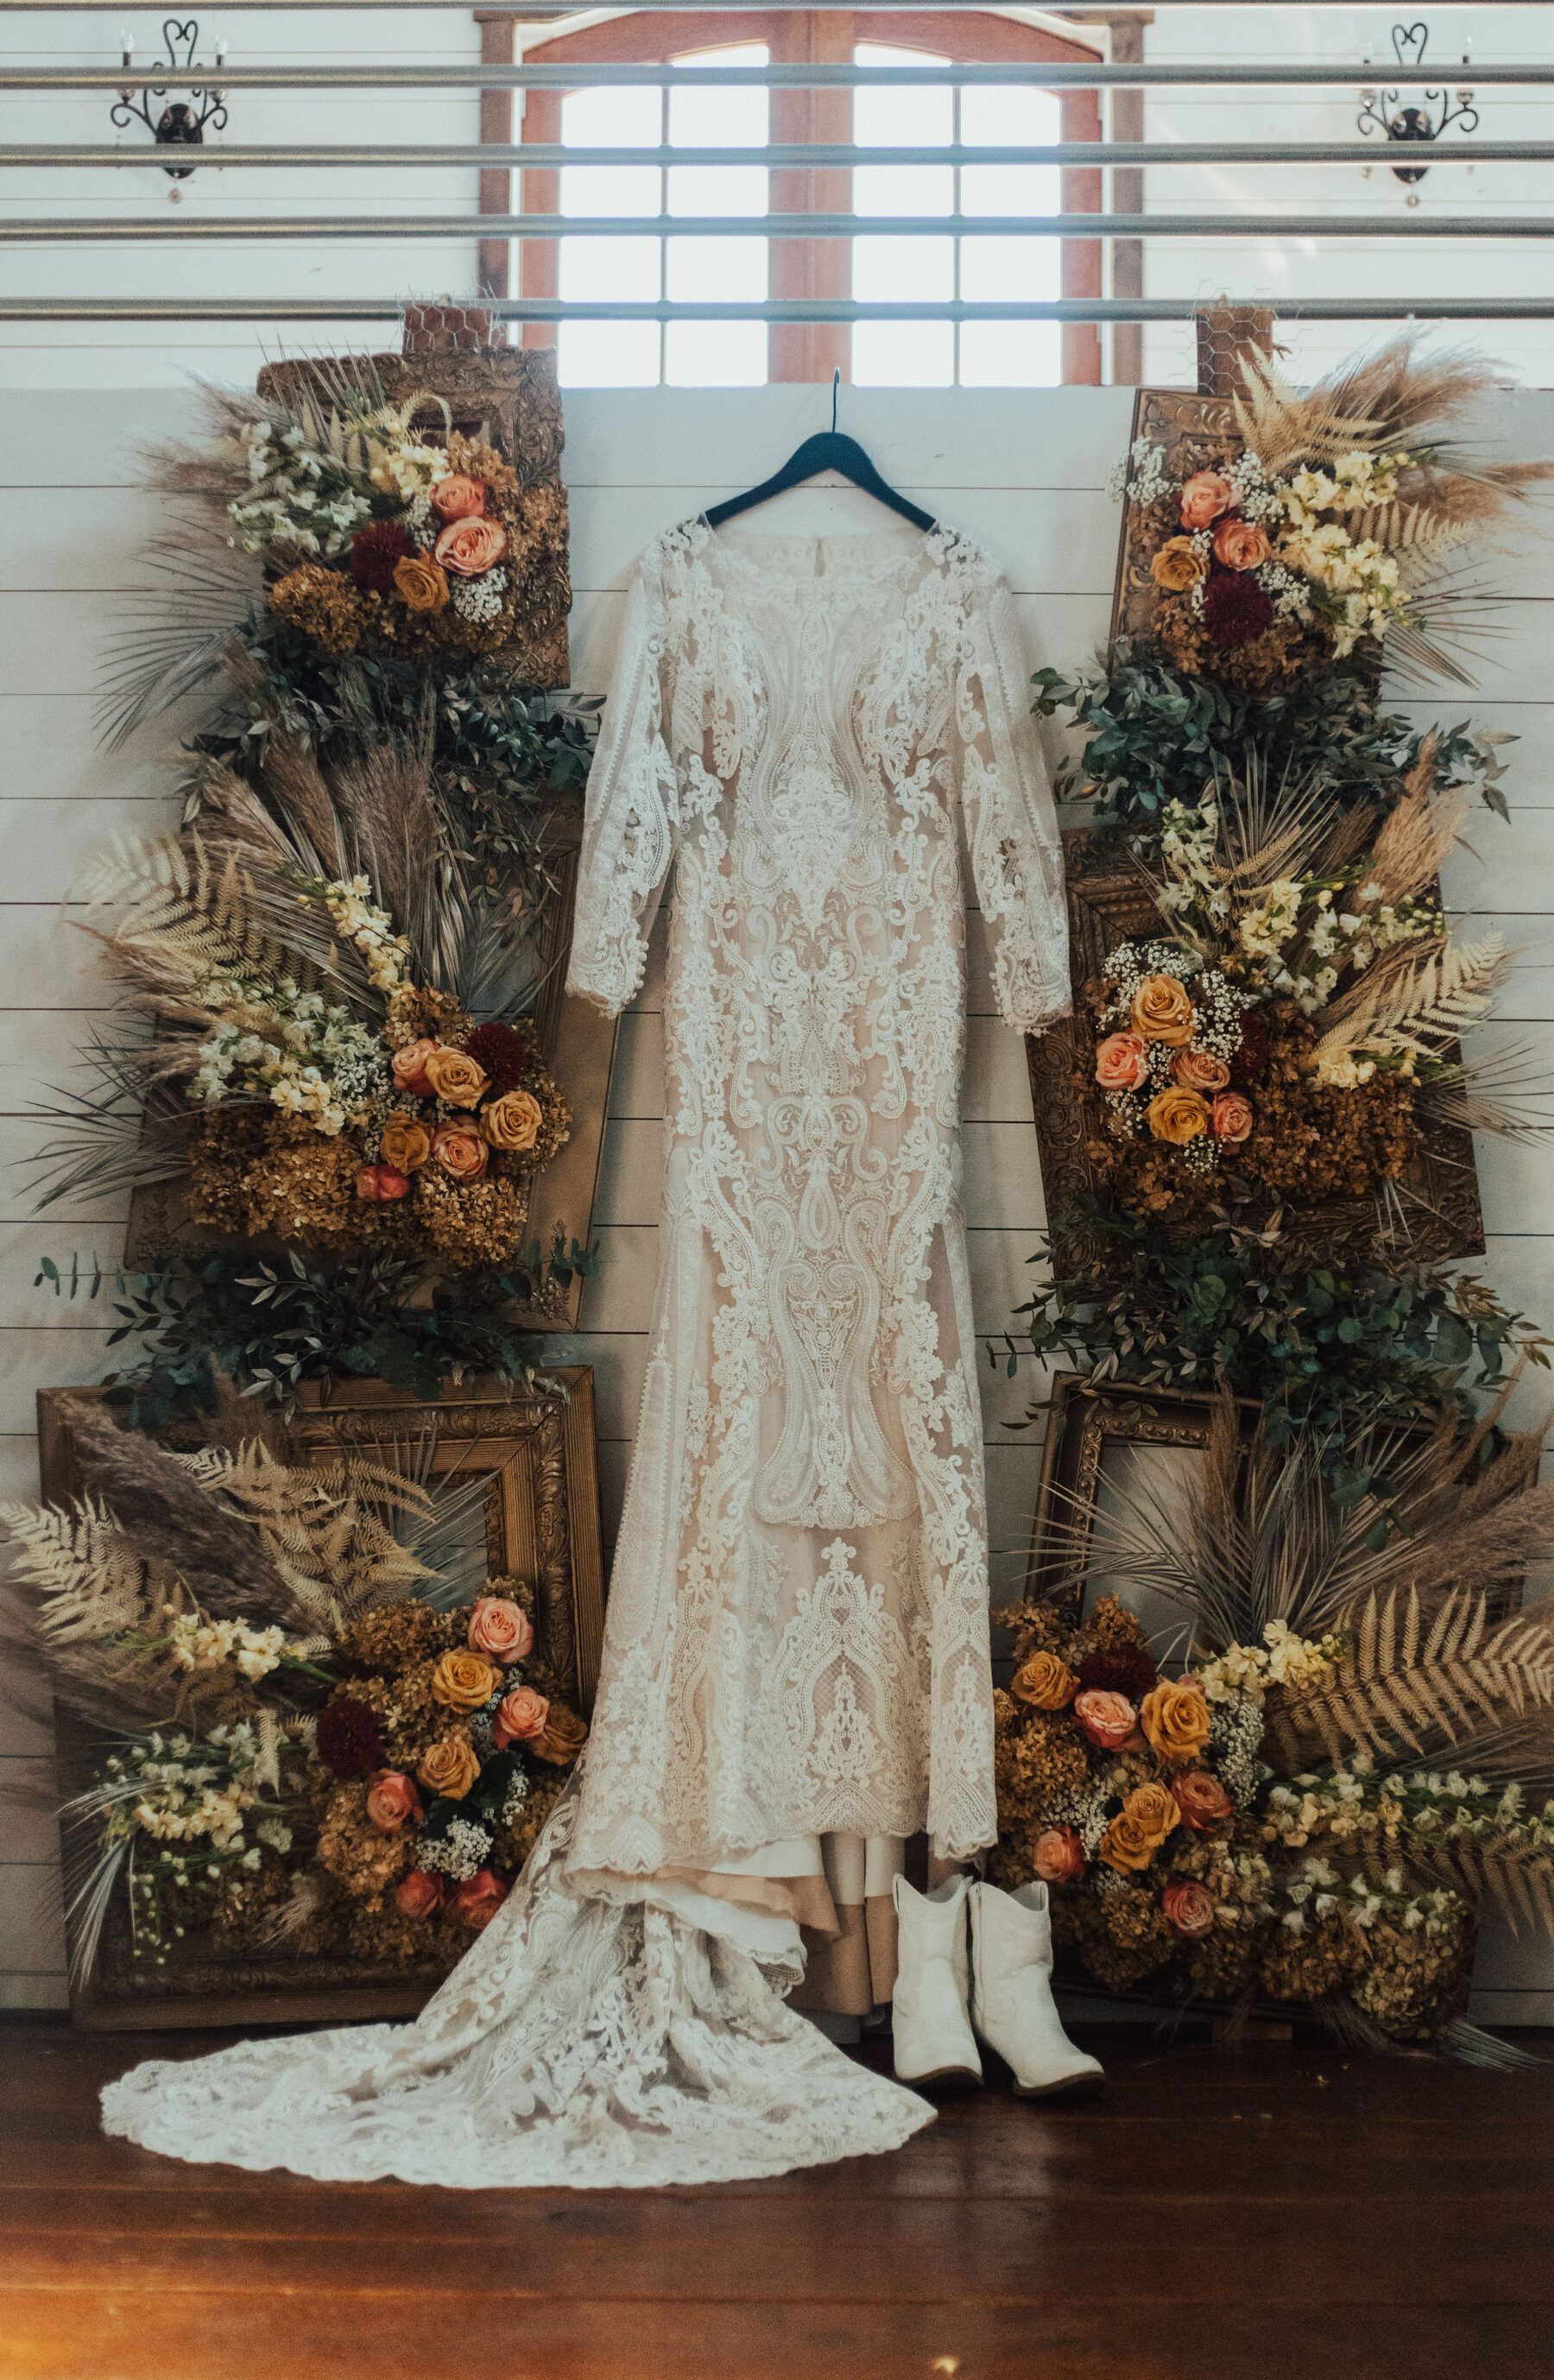 Lace wedding dress: Bright Bohemian Photo Shoot from Ina J Designs